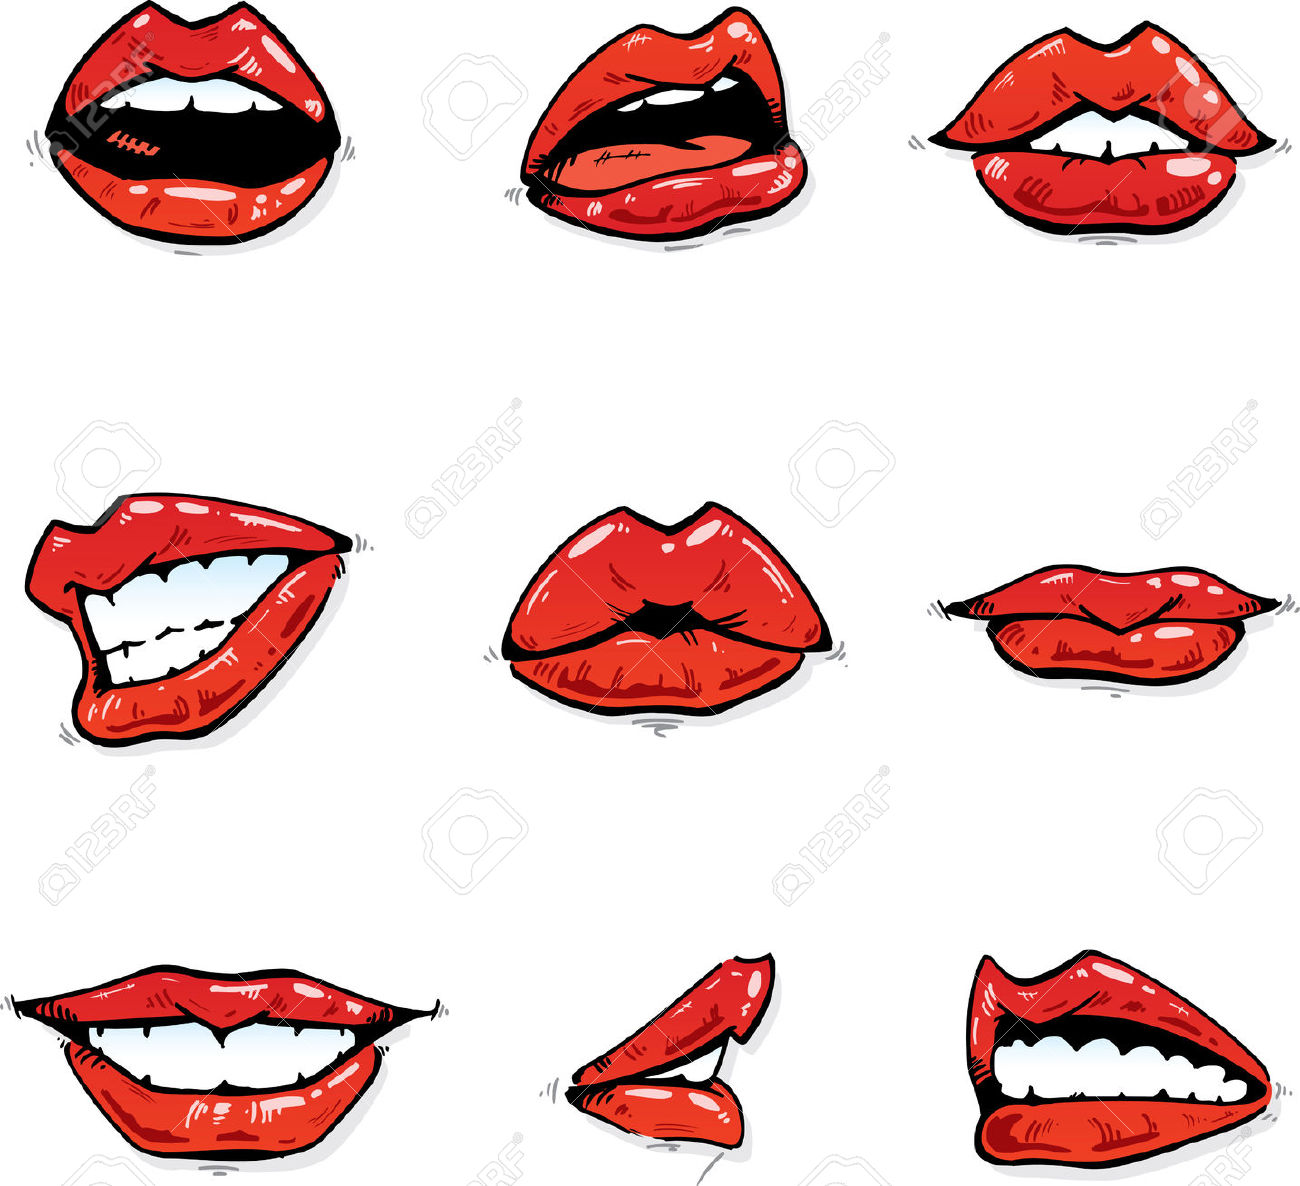 Glossy Red Lips Collection In Various Expressions Illustration.